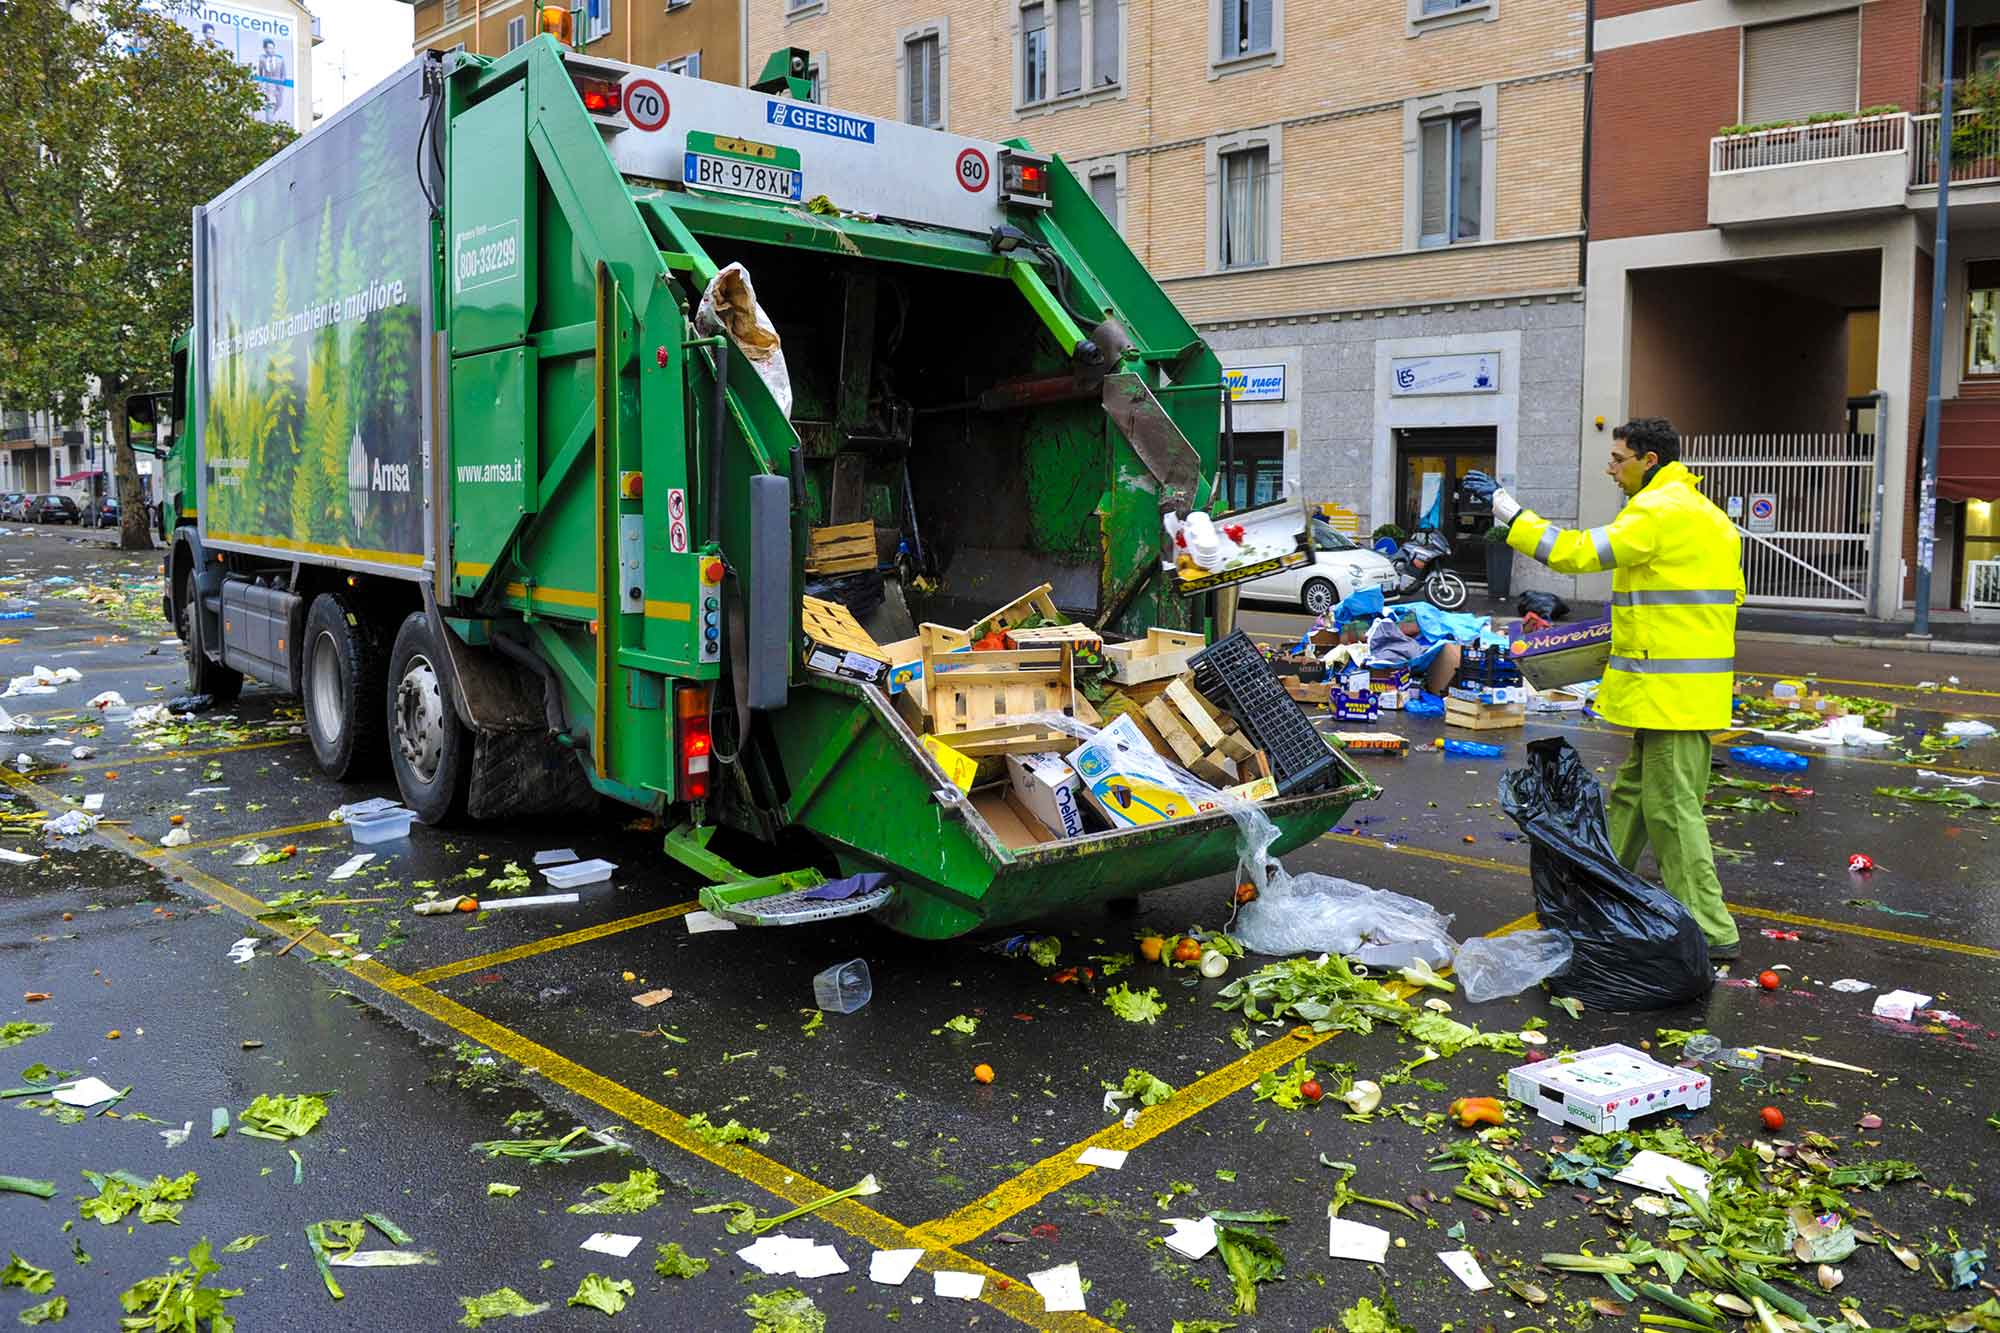 Garbage truck in Milan after a food market